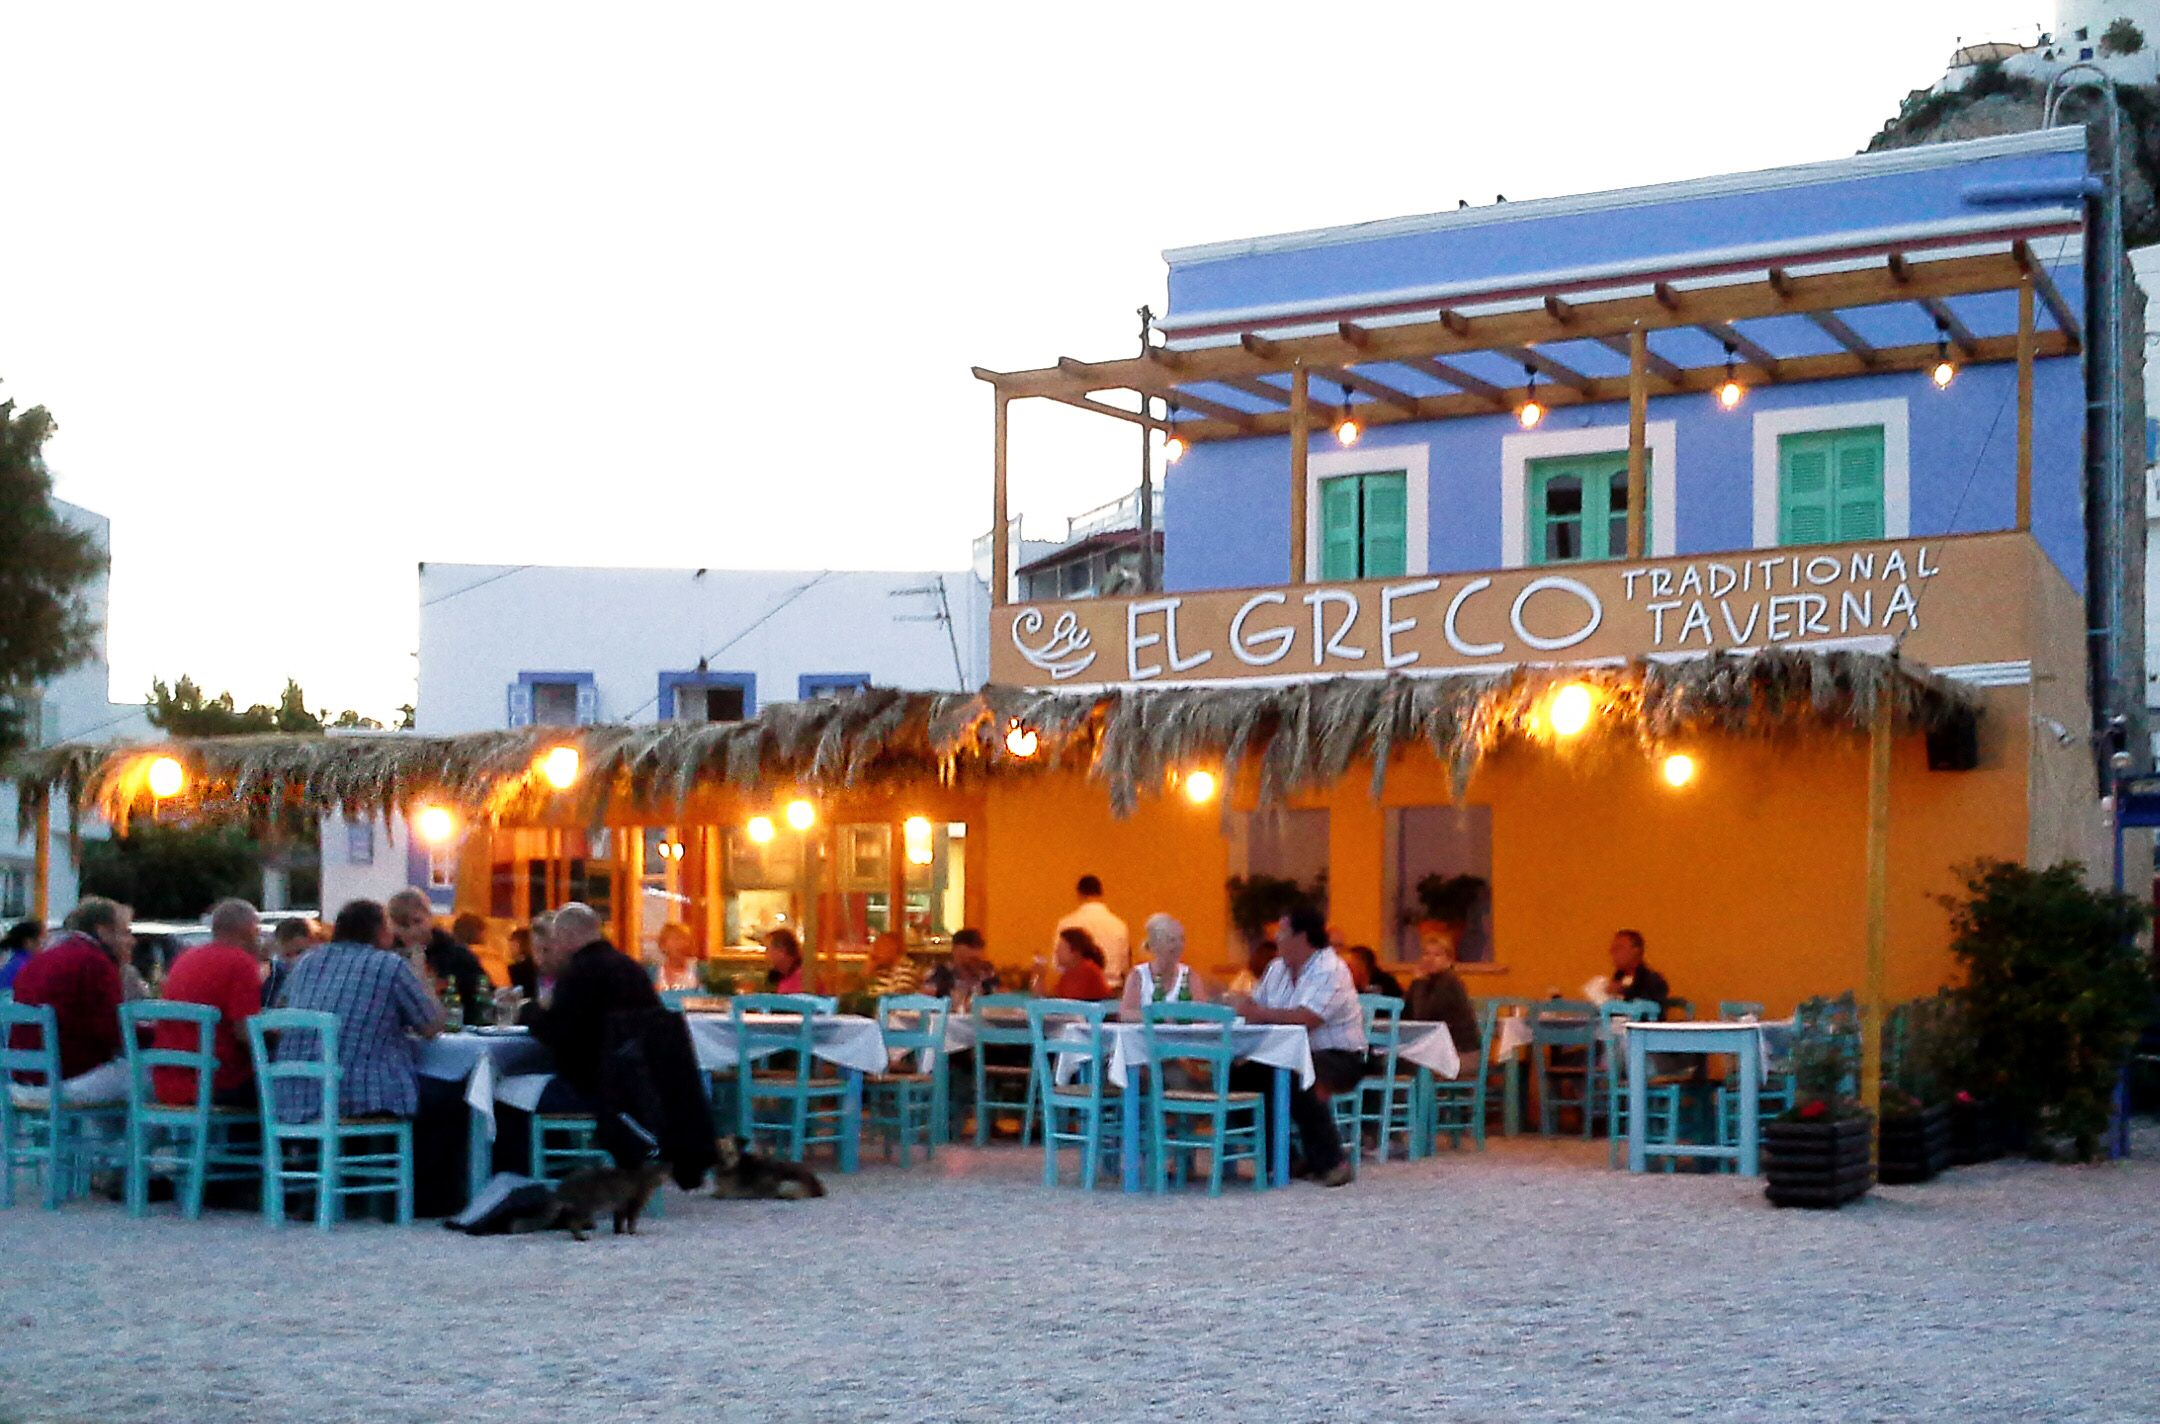 Another great evening, eating at El Greco Traditional Taverna